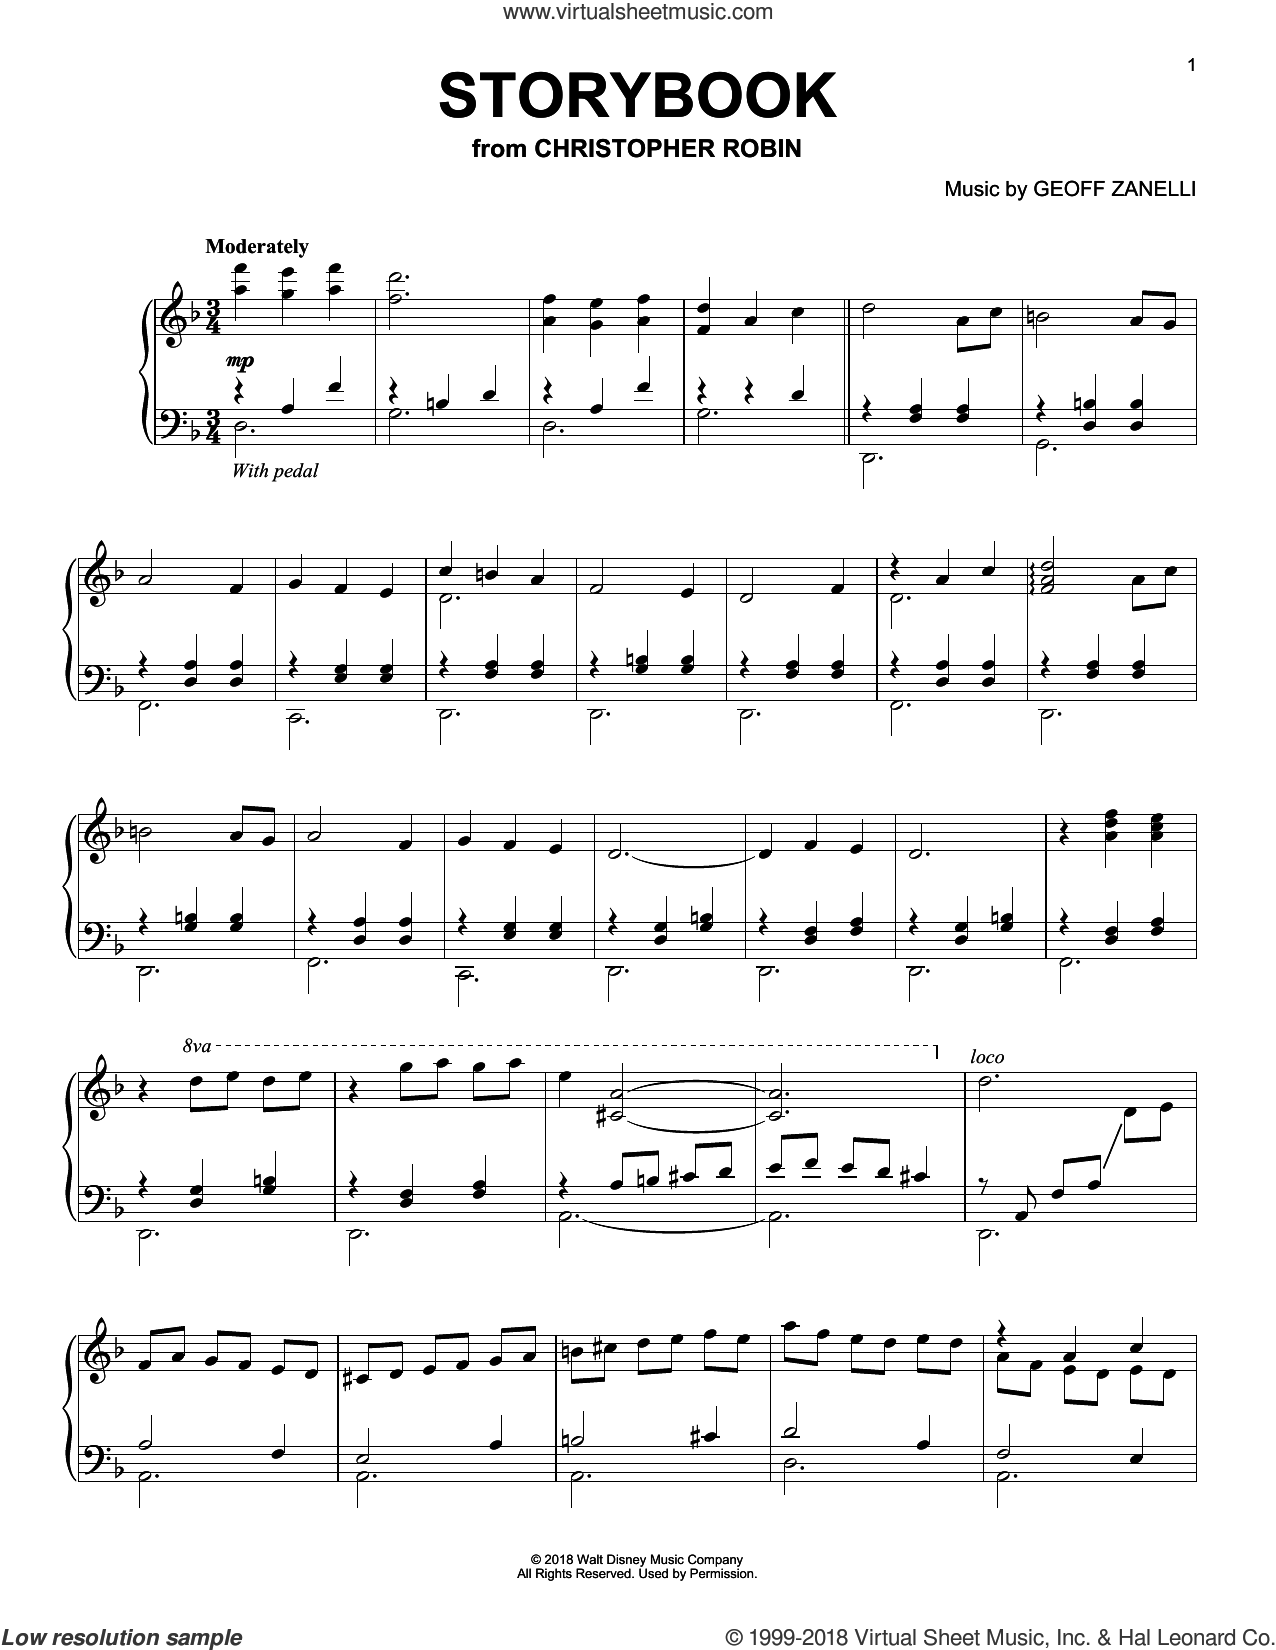 Storybook (from Christopher Robin) sheet music for piano solo by Geoff Zanelli & Jon Brion, Geoff Zanelli and Jon Brion, intermediate skill level